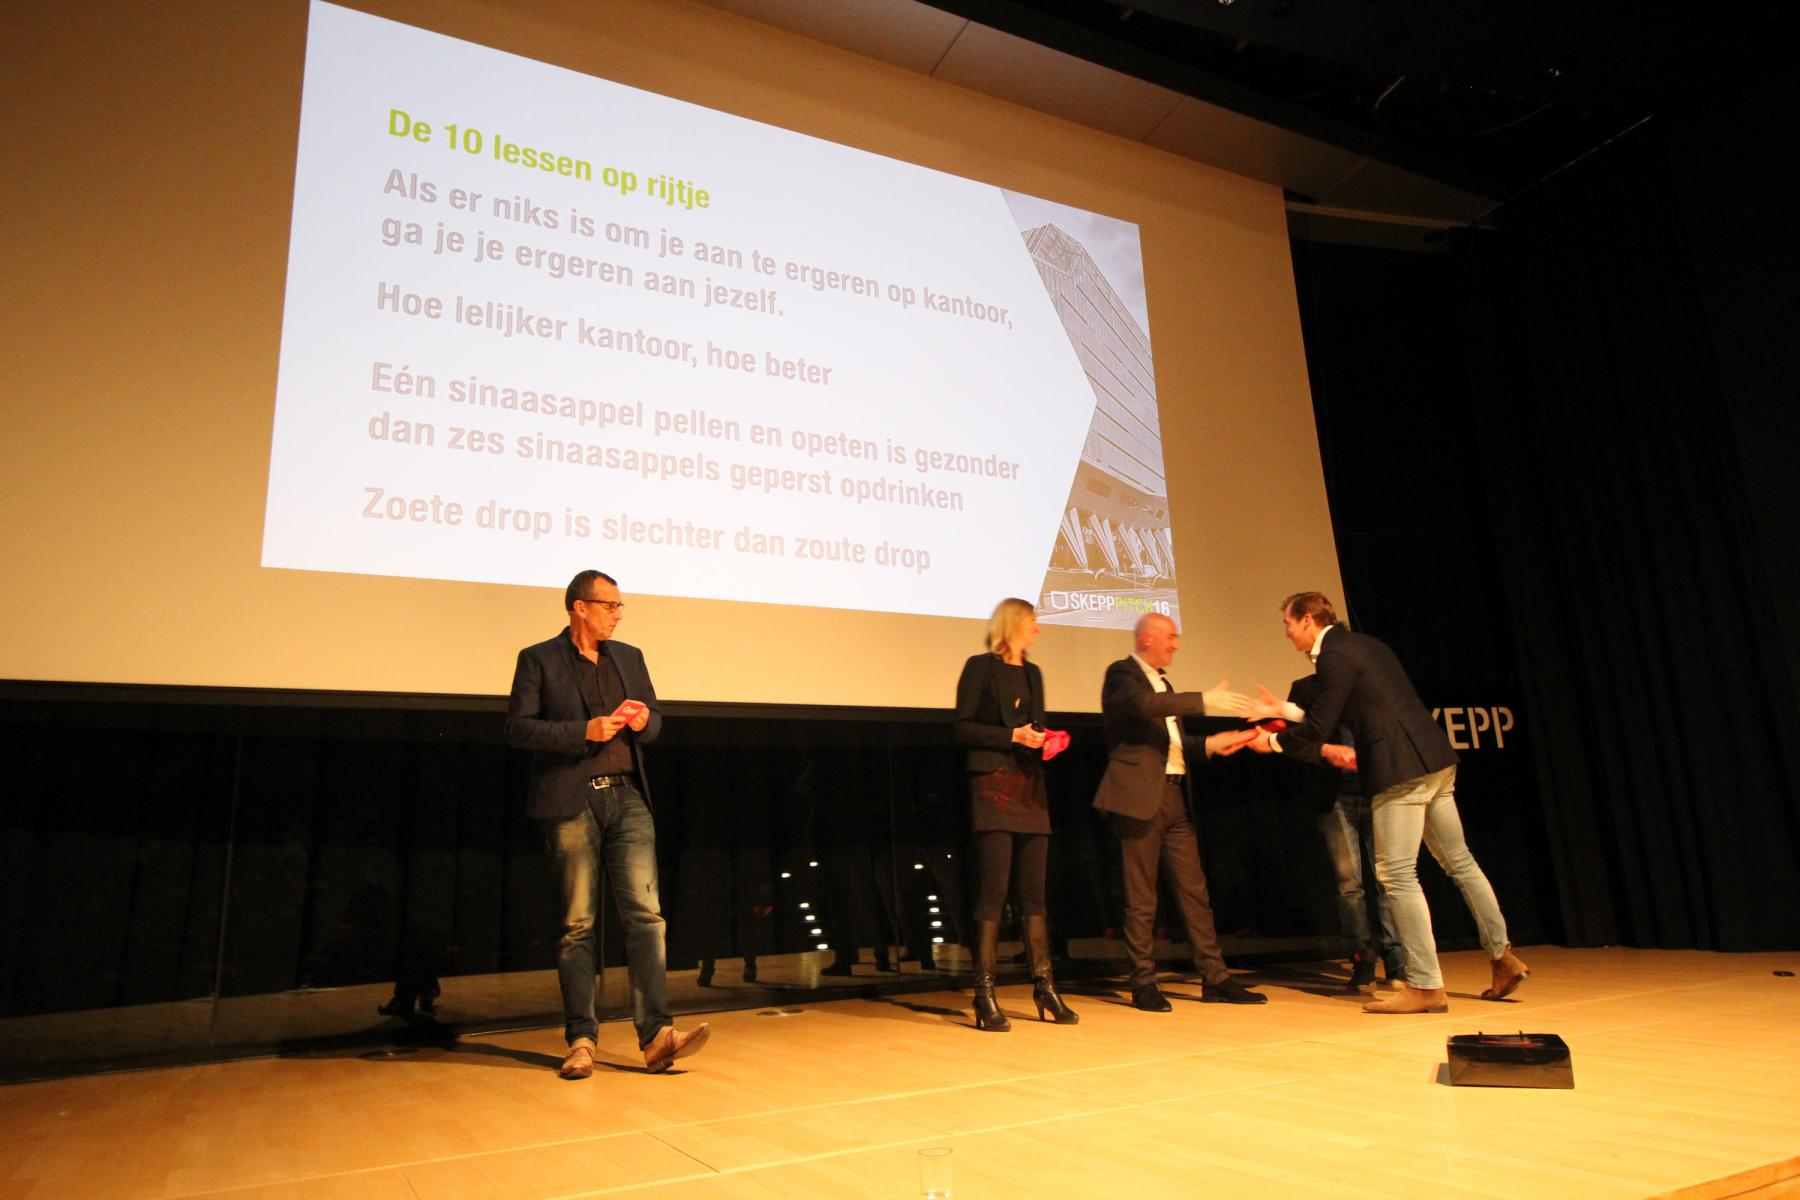 10 lessen tips skepp pitch amsterdam